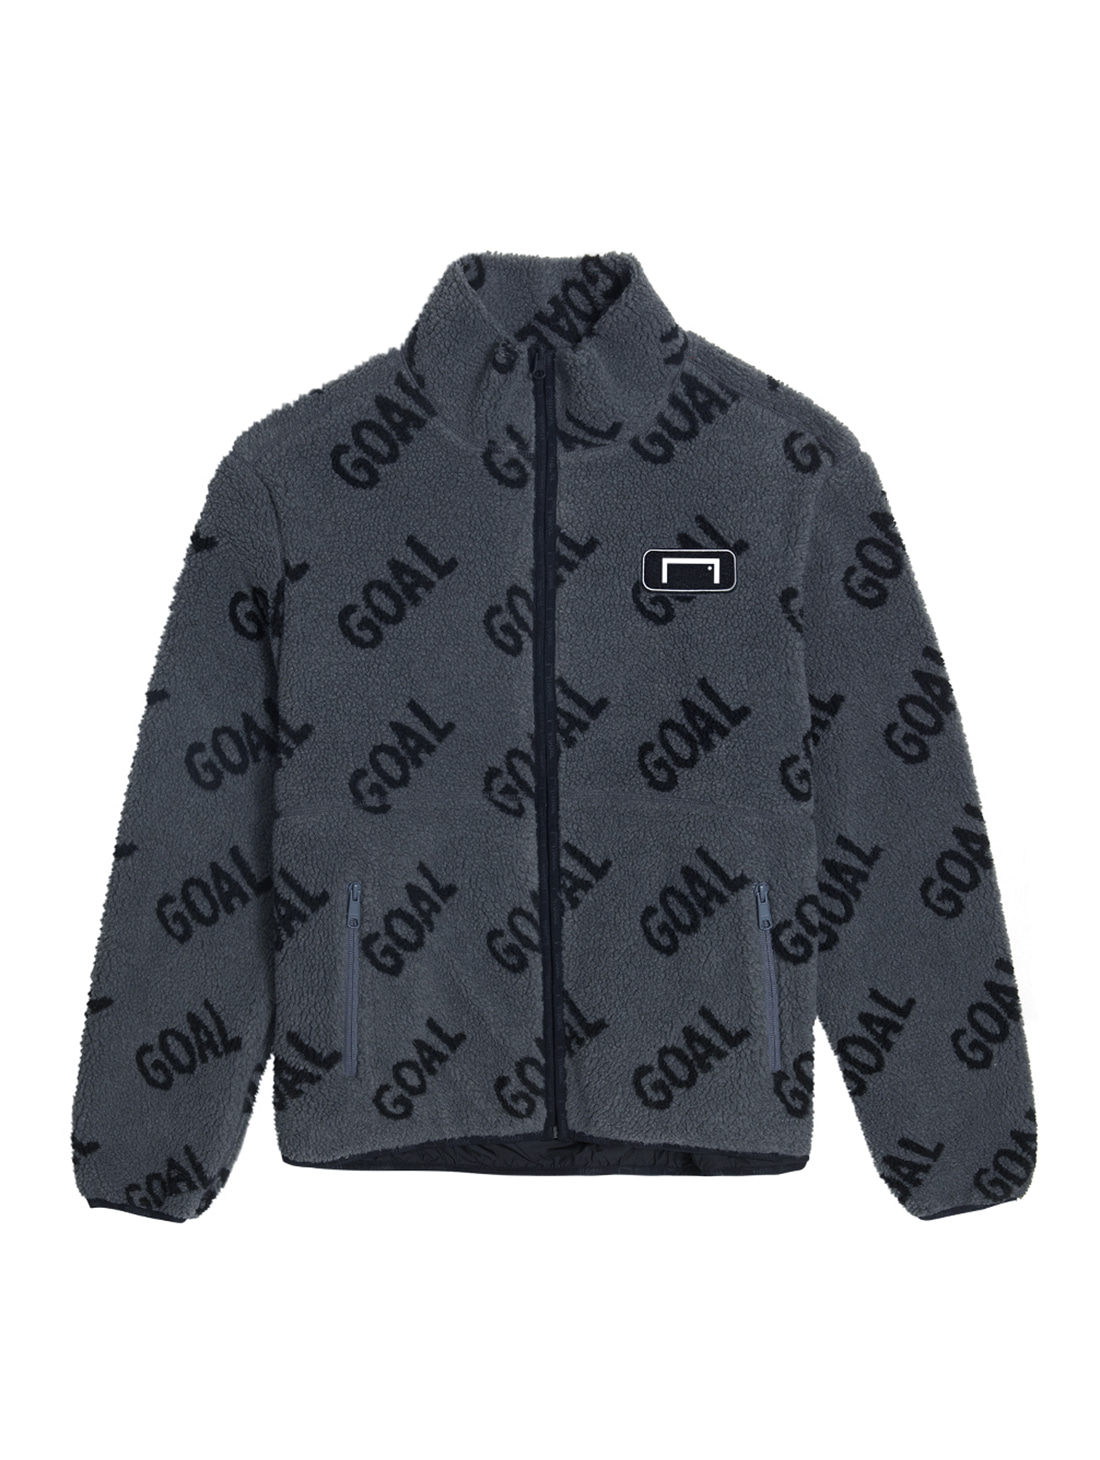 REVERSIBLE FLEECE JACKET - GRAY/BLACK